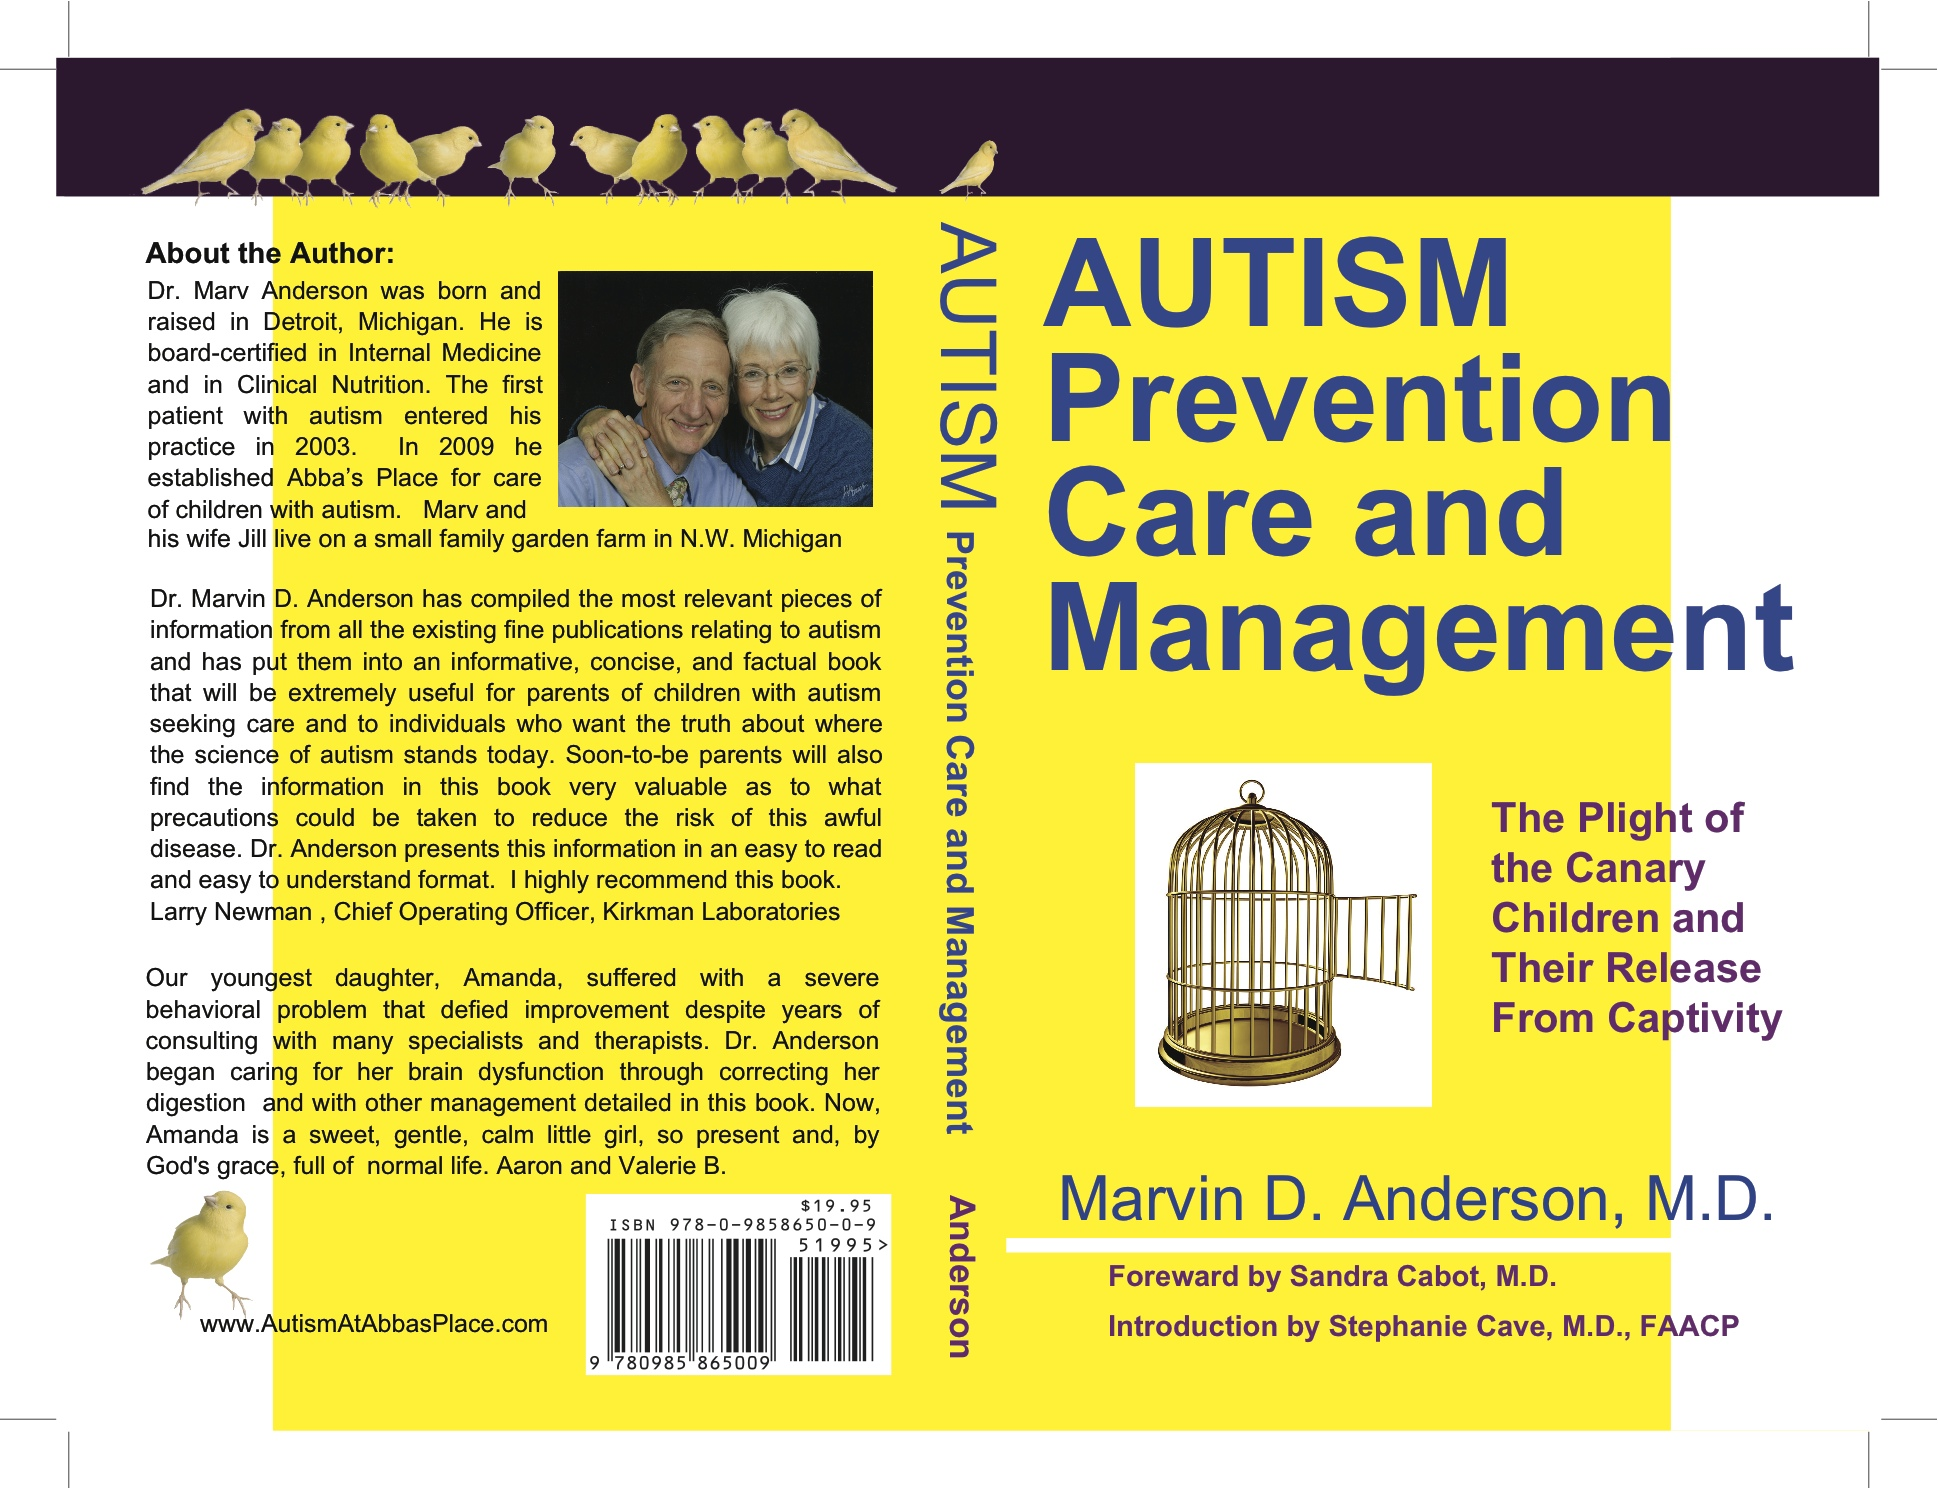 Autism Prevention Care and Management